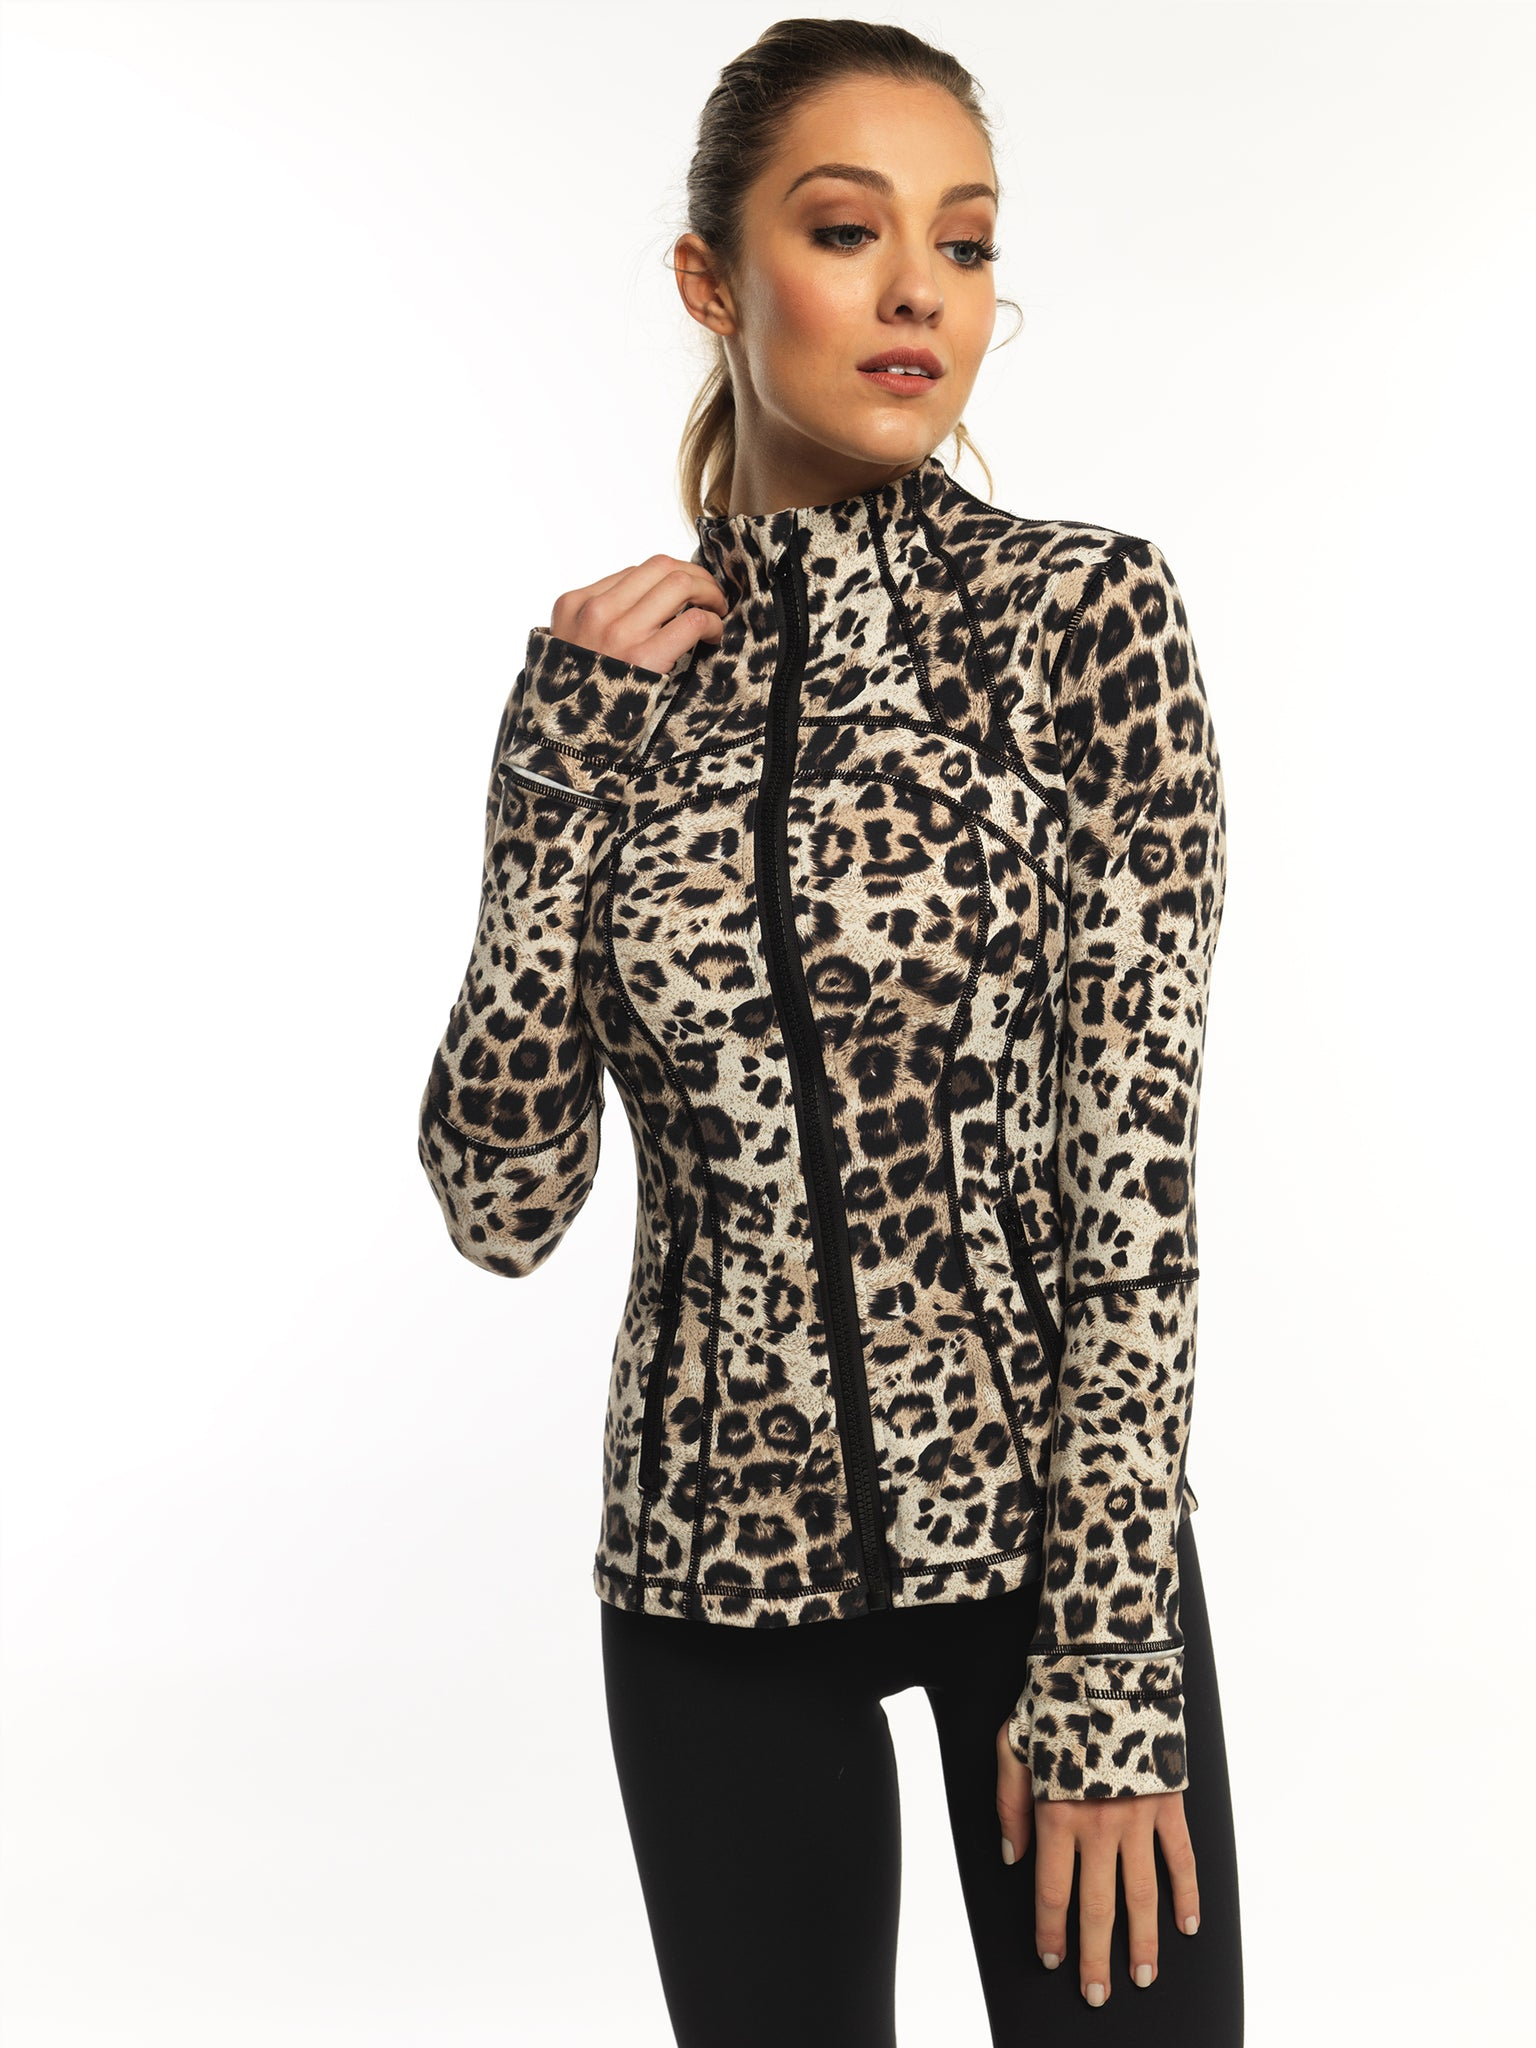 CONTOUR DESIGN RUNNING LEOPARD JACKET